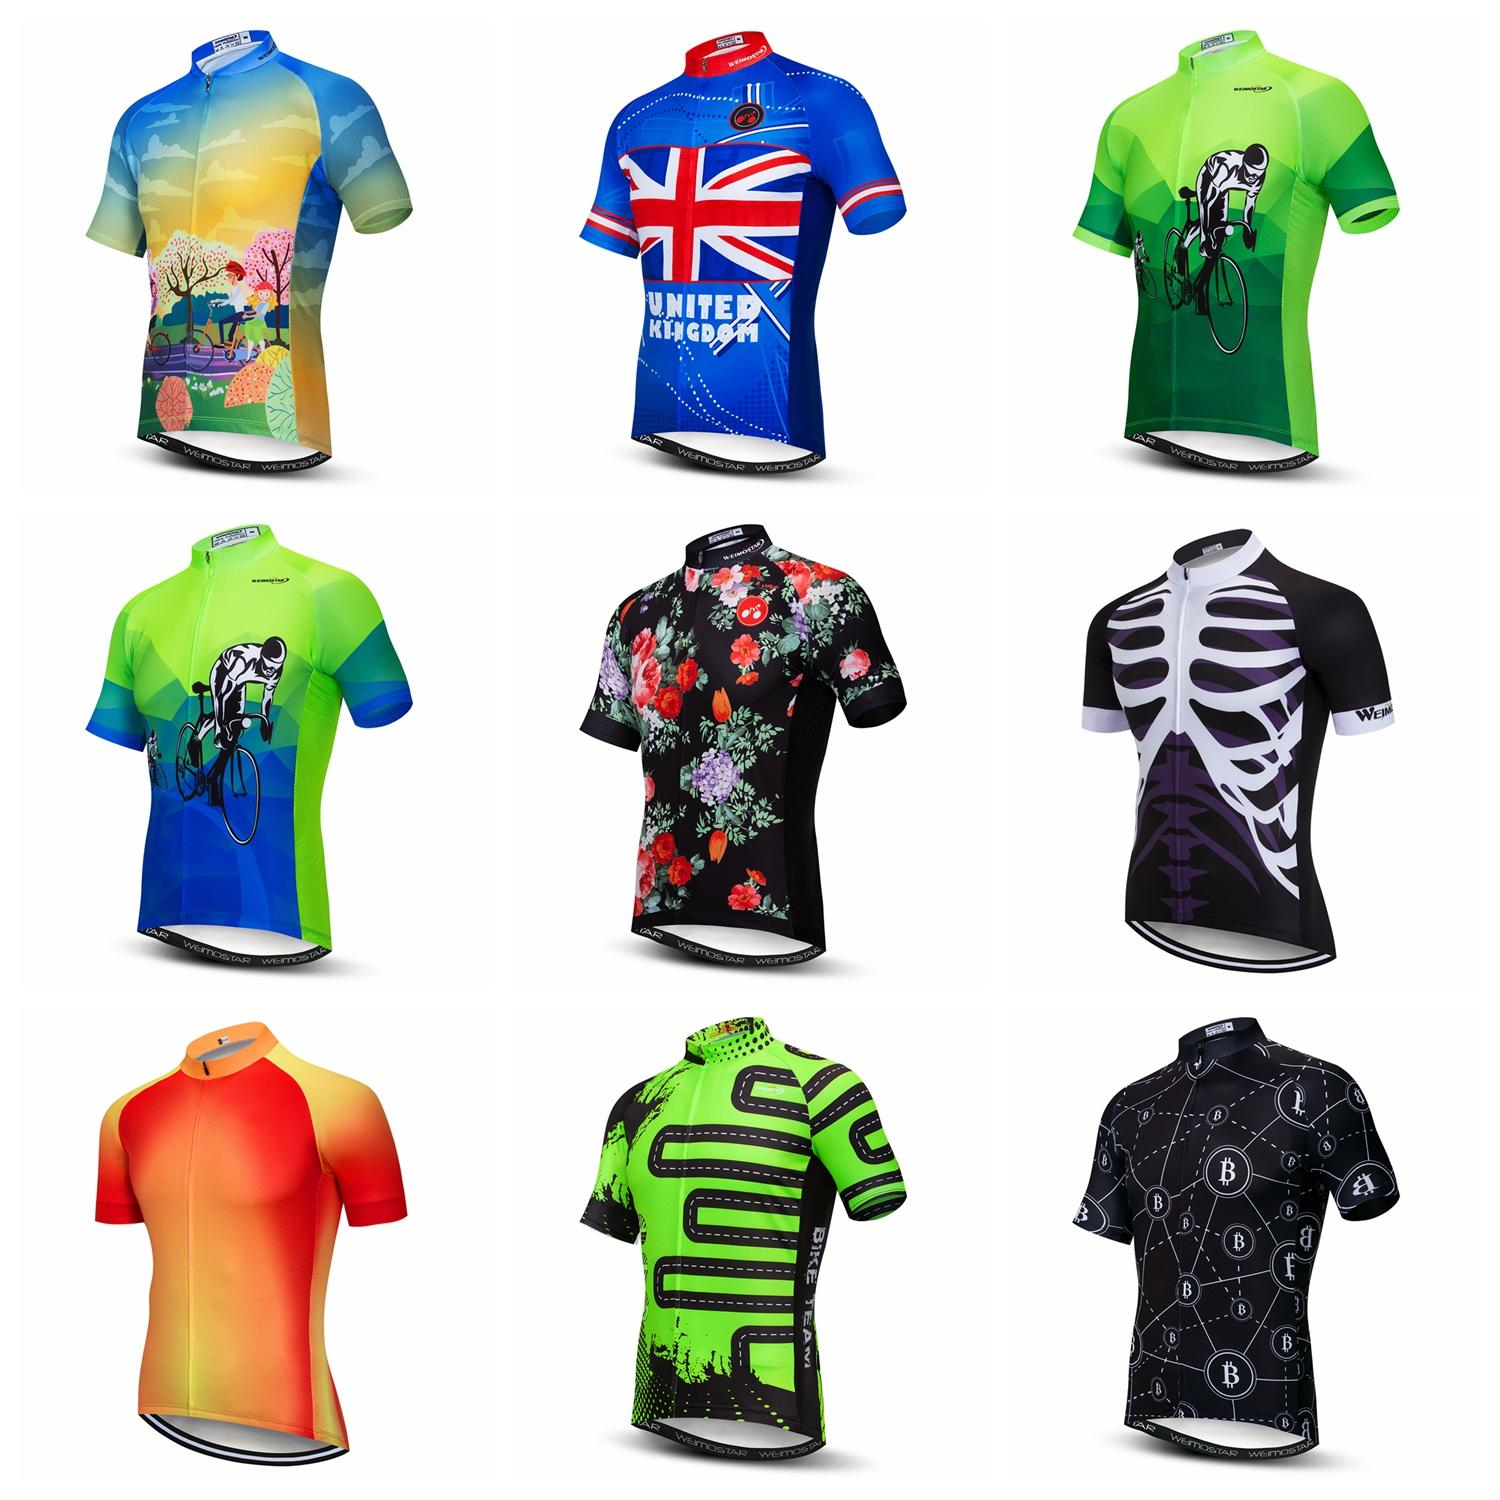 Weimostar Cycling Jersey Men Bike Shirt Breathable SHort Sleeve Summer Wear Tops